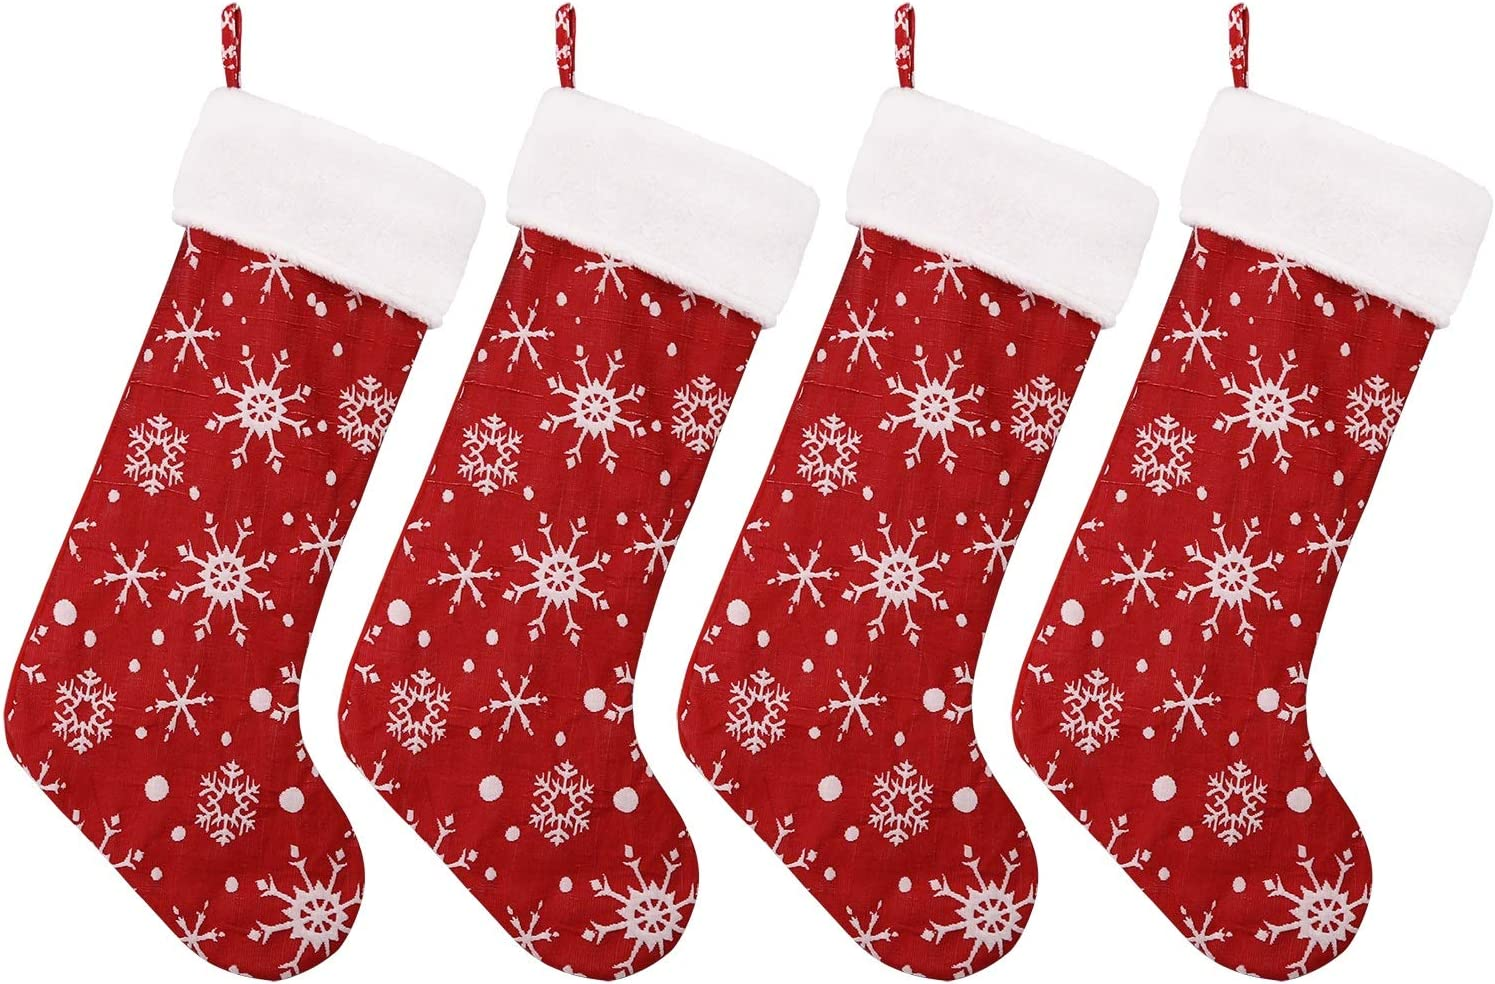 """Classic Christmas Stocking. Snowflakes with White Plush Trim. Perfect for Home Decoration, Gift Display and Added Holiday Spirit. (4PC; Large 22"""")"""